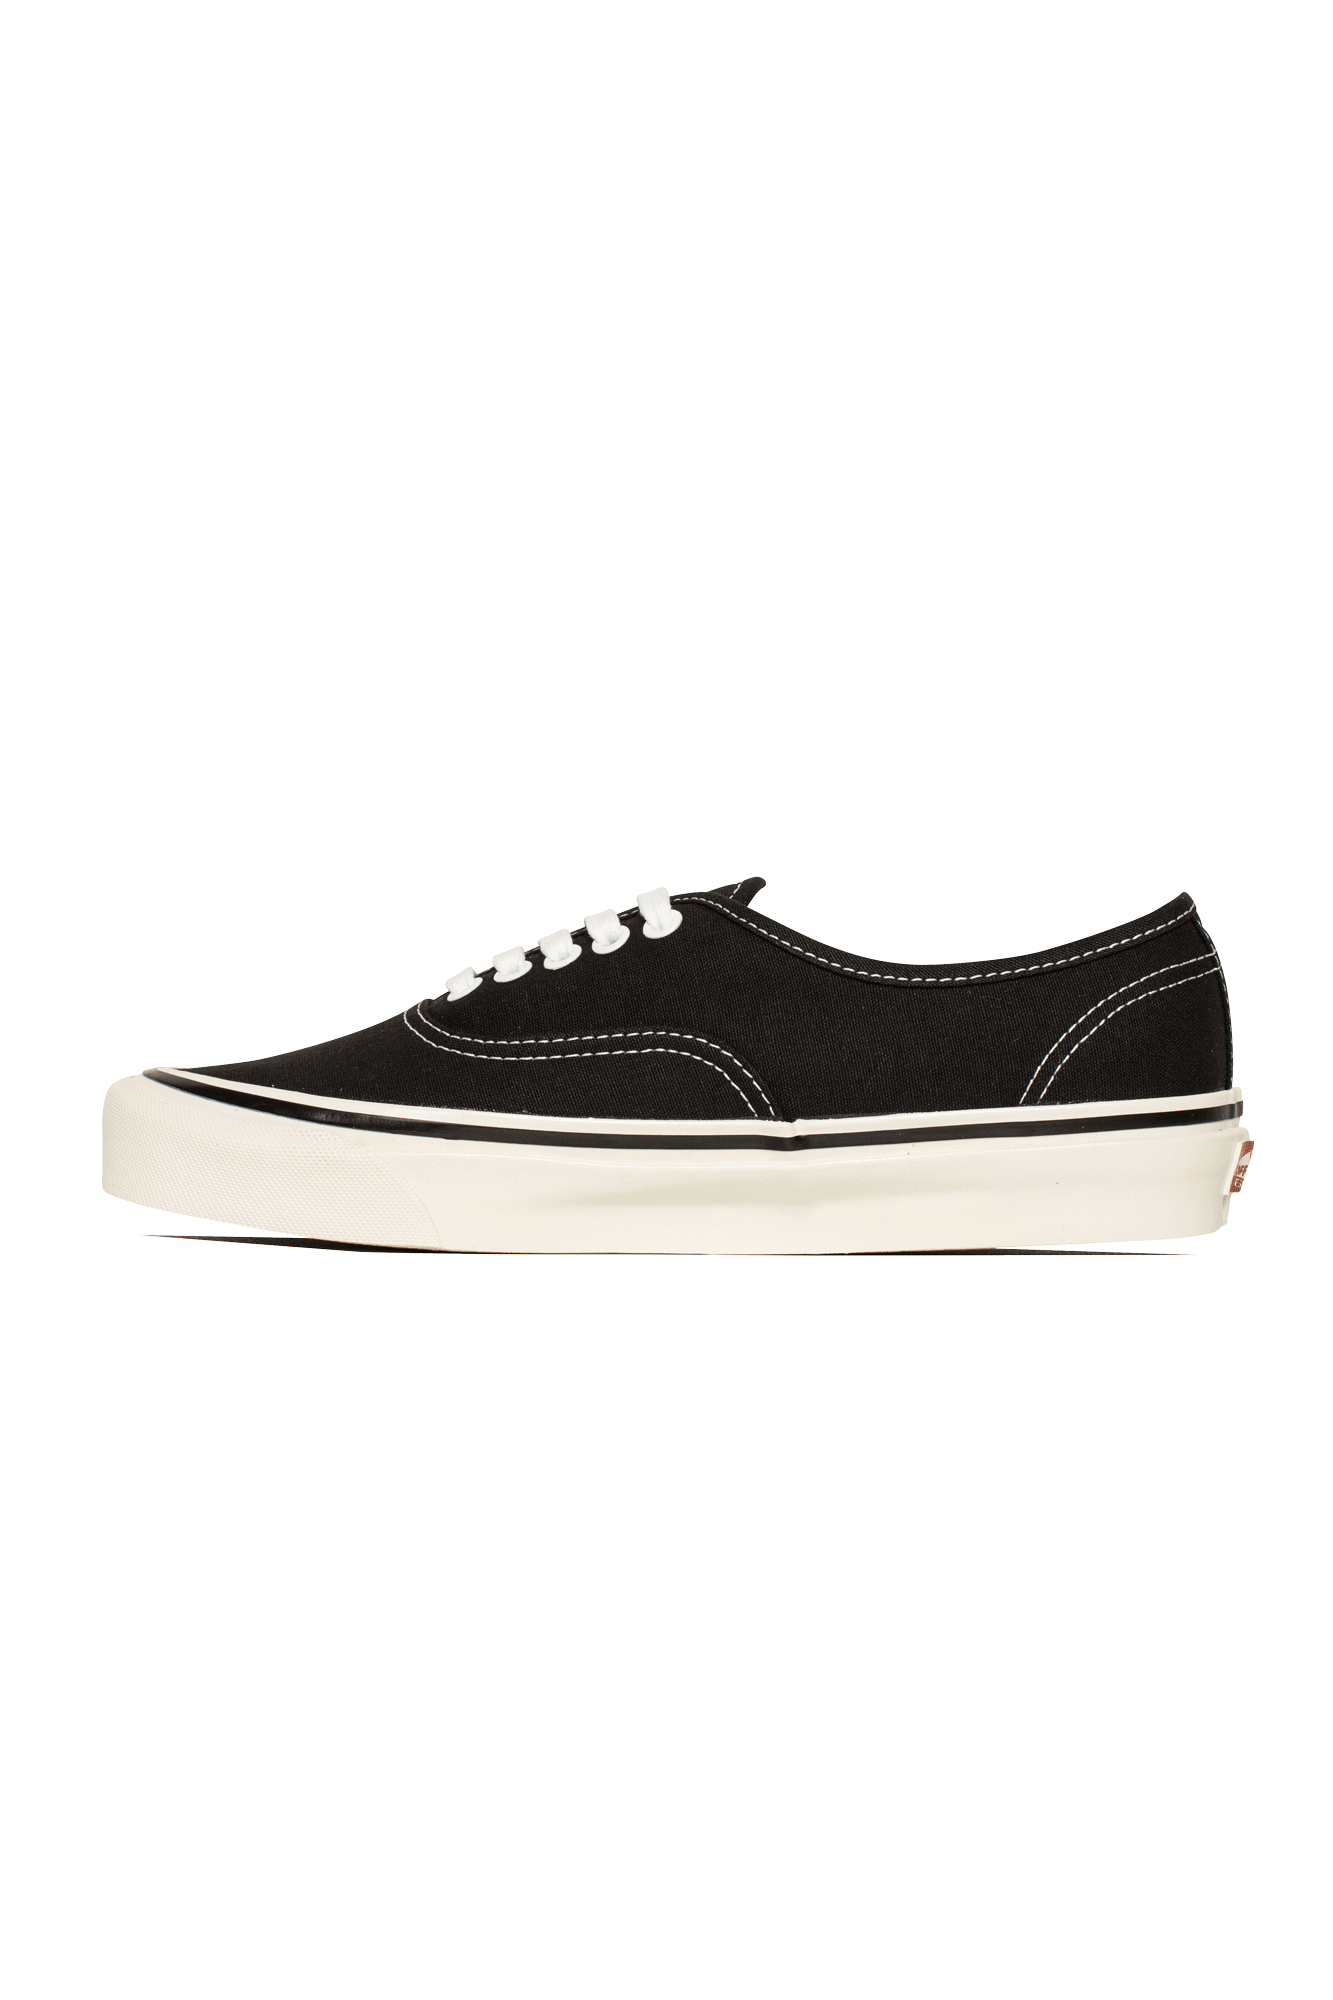 Vans Sneakers Authentic 44 DX Nero VN0A38EN#000#MR21#5,5 - One Block Down